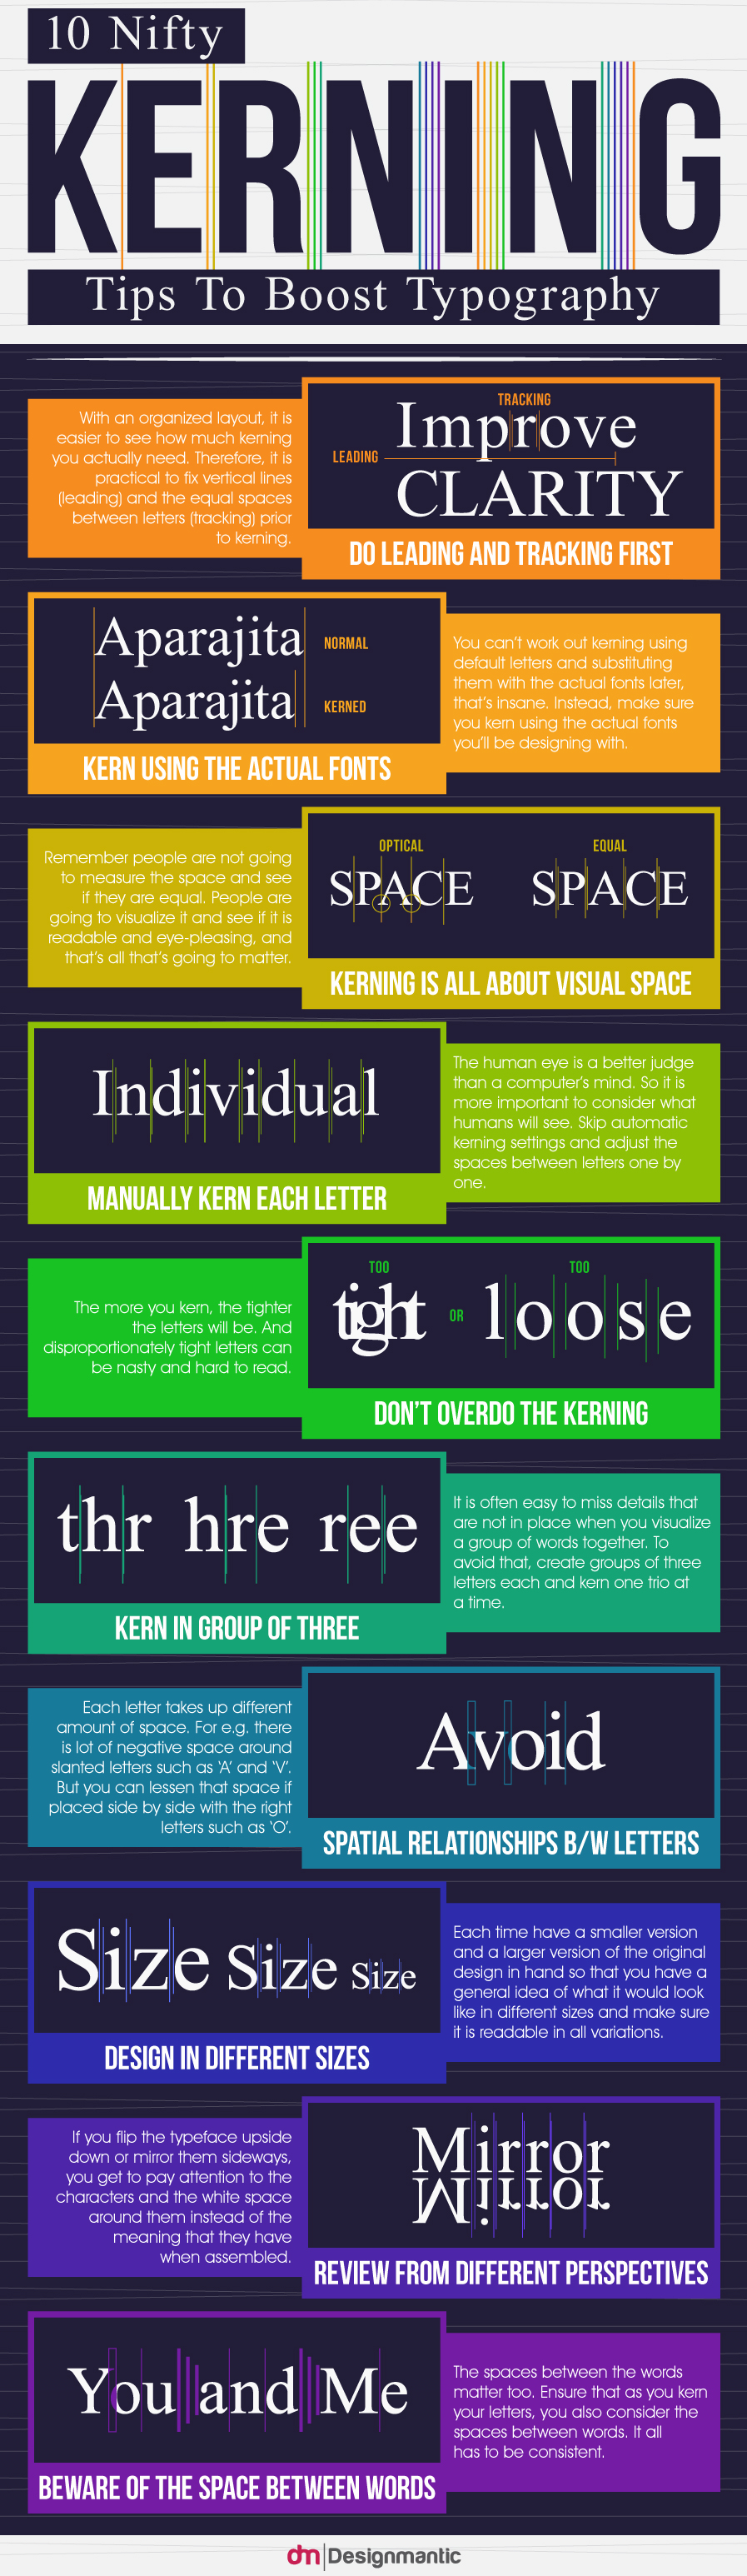 10 Nifty Kerning Tips To Boost Typography